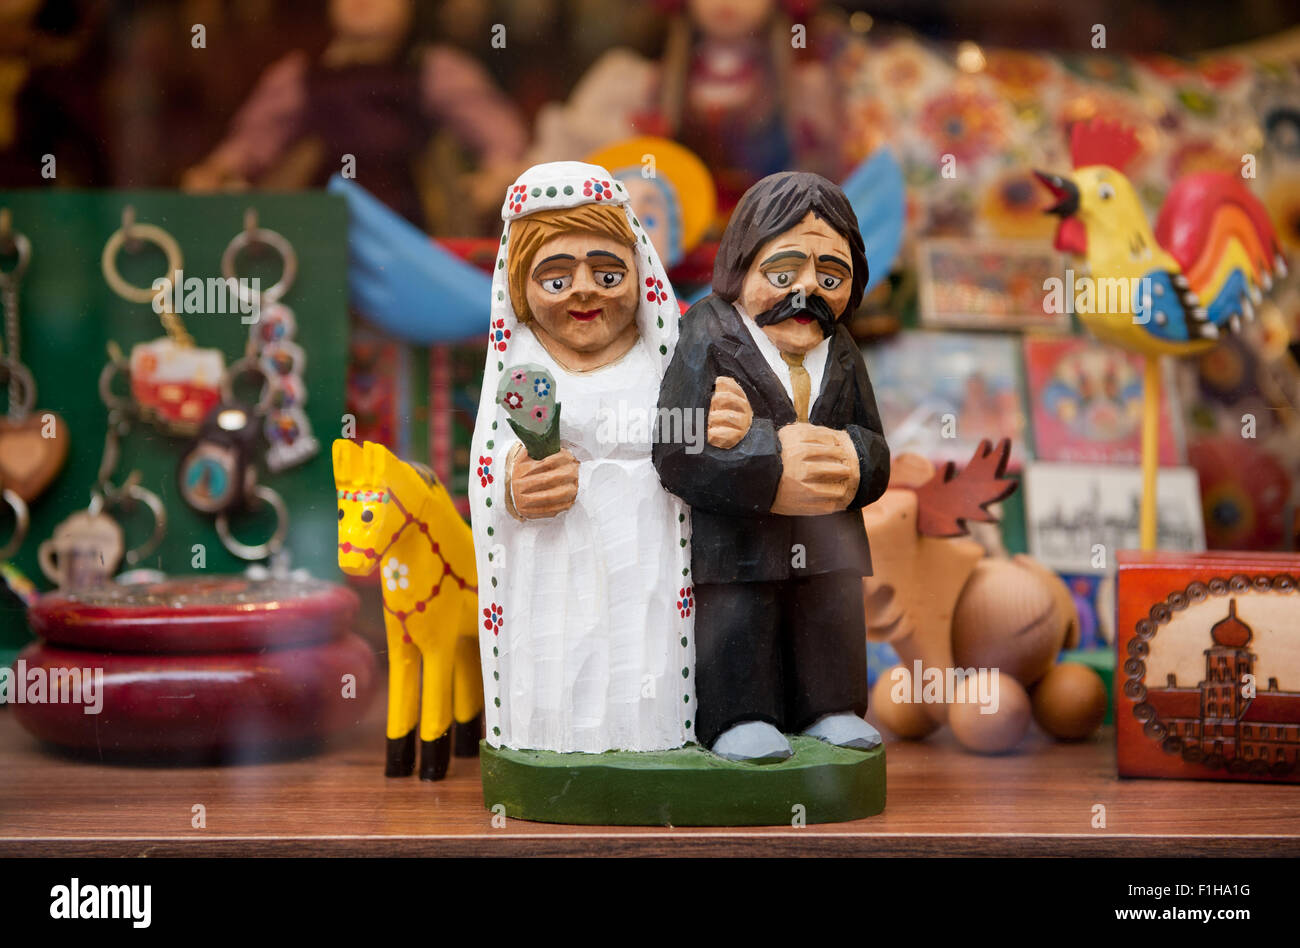 Wedding old newlyweds souvenir - Stock Image